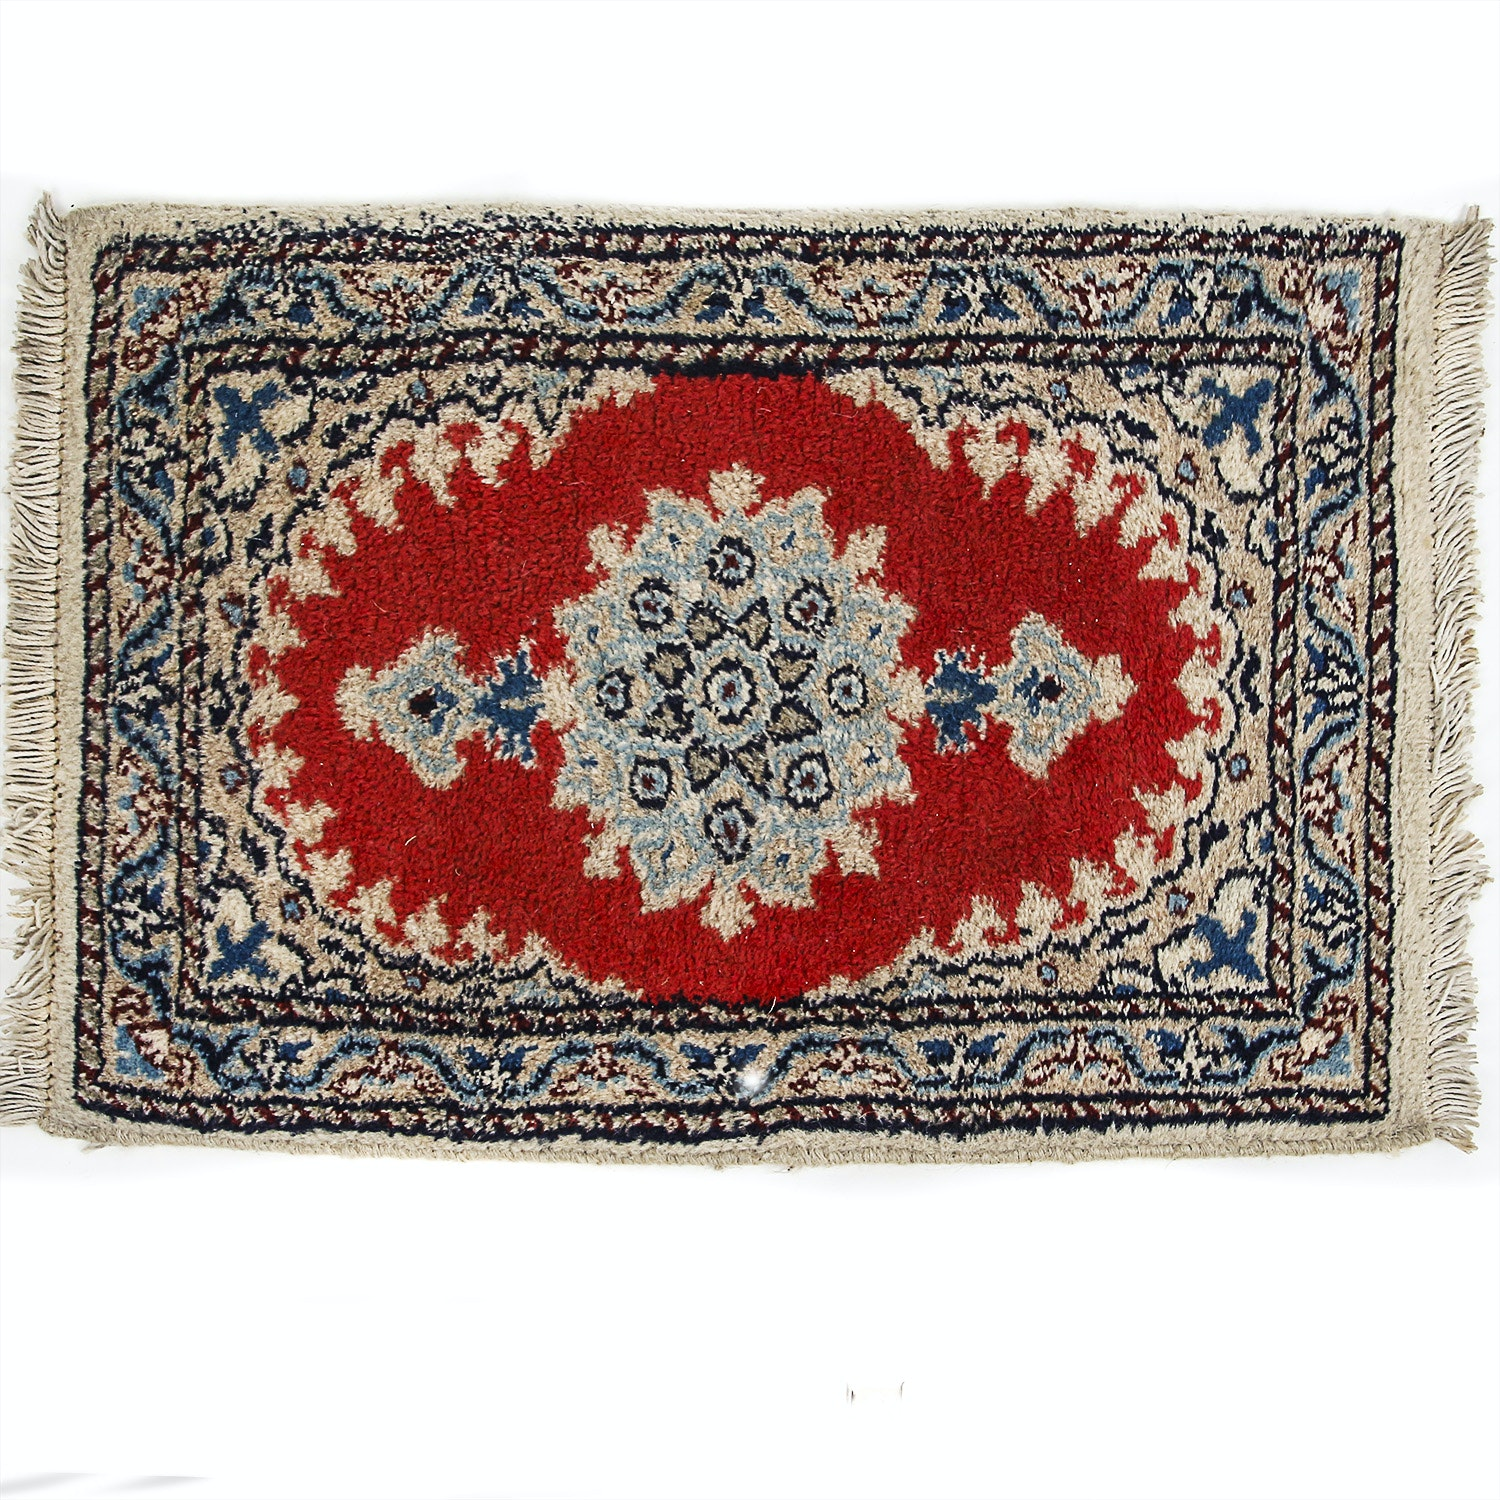 Vintage Hand-Knotted Persian Style Wool Mat